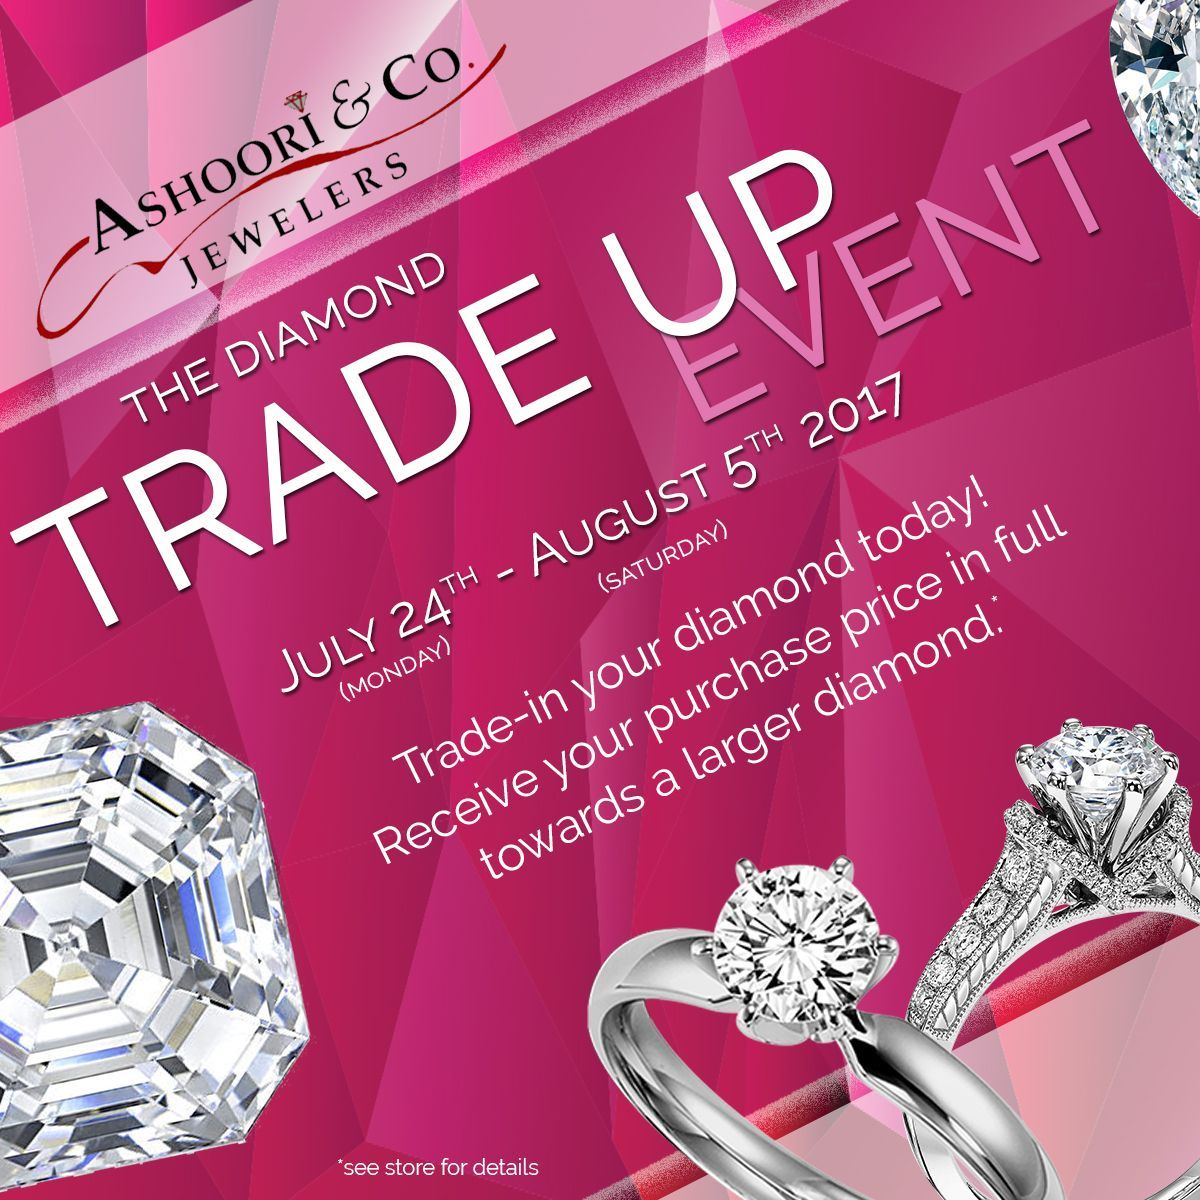 The Diamond Trade Up Event ends TOMORROW! Trade in your diamond ...